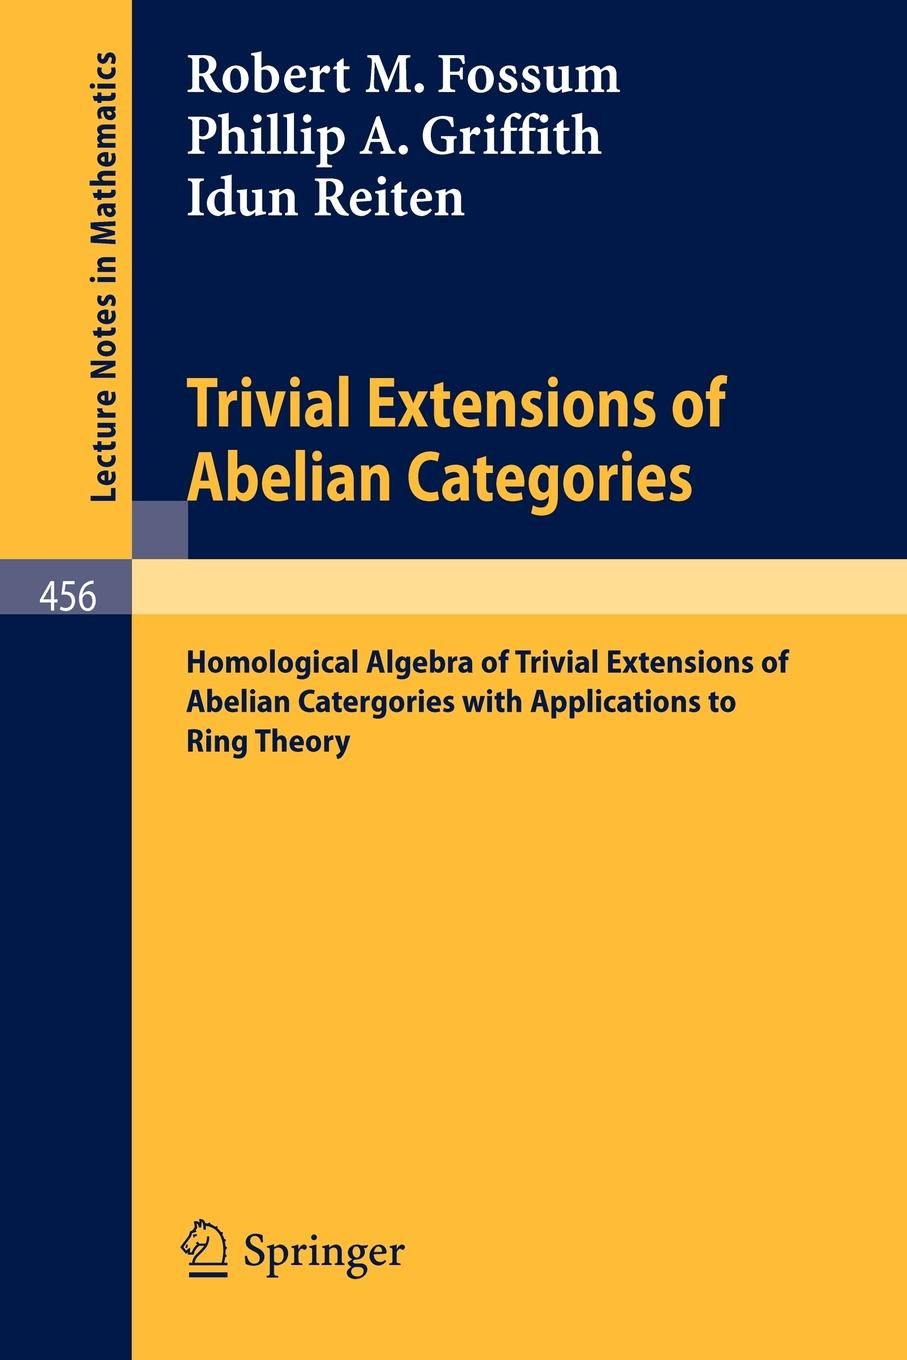 R. M. Fossum, P. a. Griffith, I. Reiten Trivial Extensions of Abelian Categories. Homological Algebra of Trivial Extensions of Abelian Catergories with Applications to Ring Theory olivia seger trivial